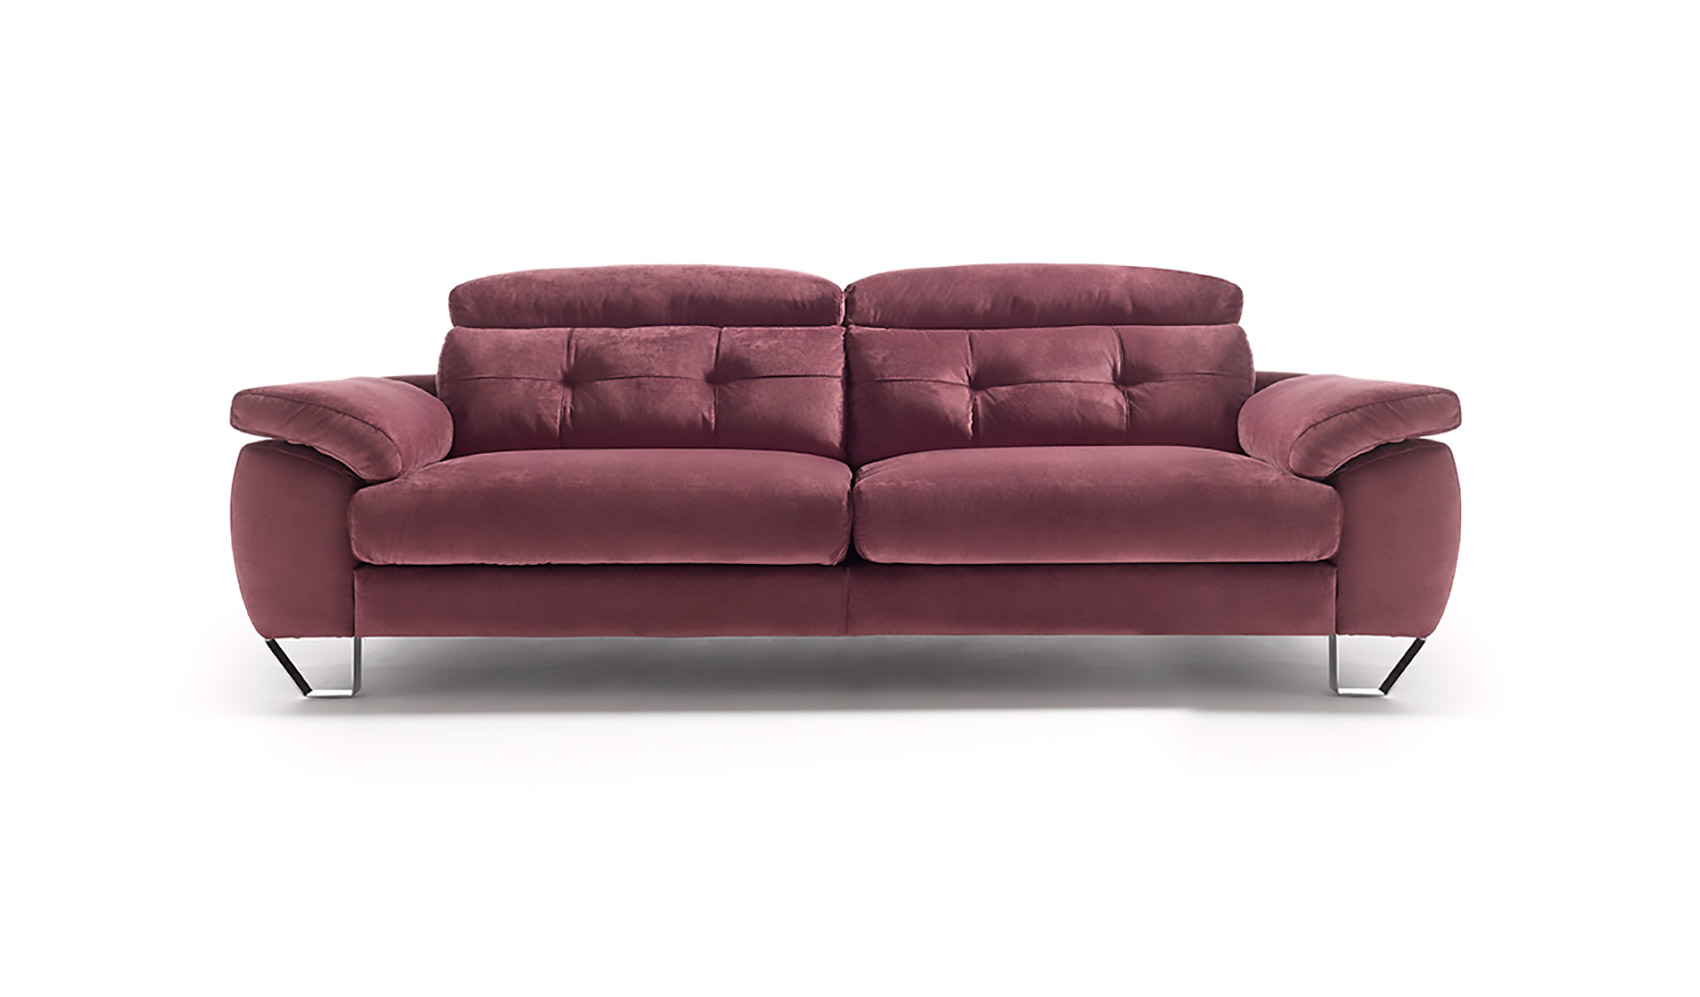 Chaiselongue acomodel game for Chaise longue online